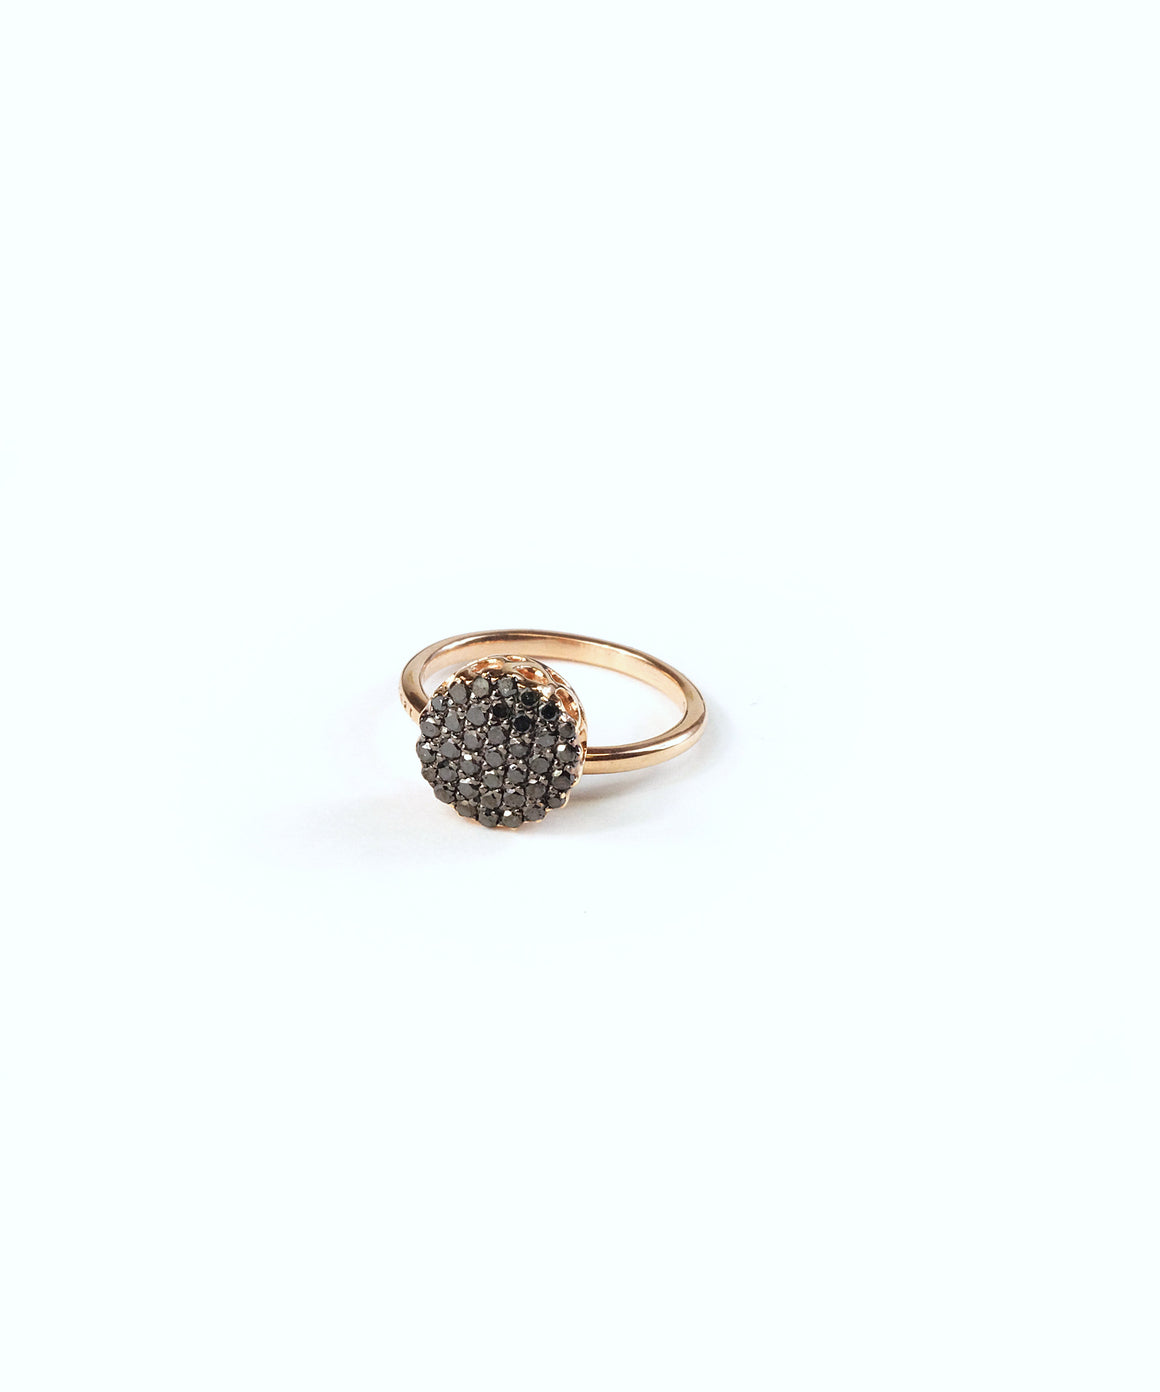 Black diamond stack ring